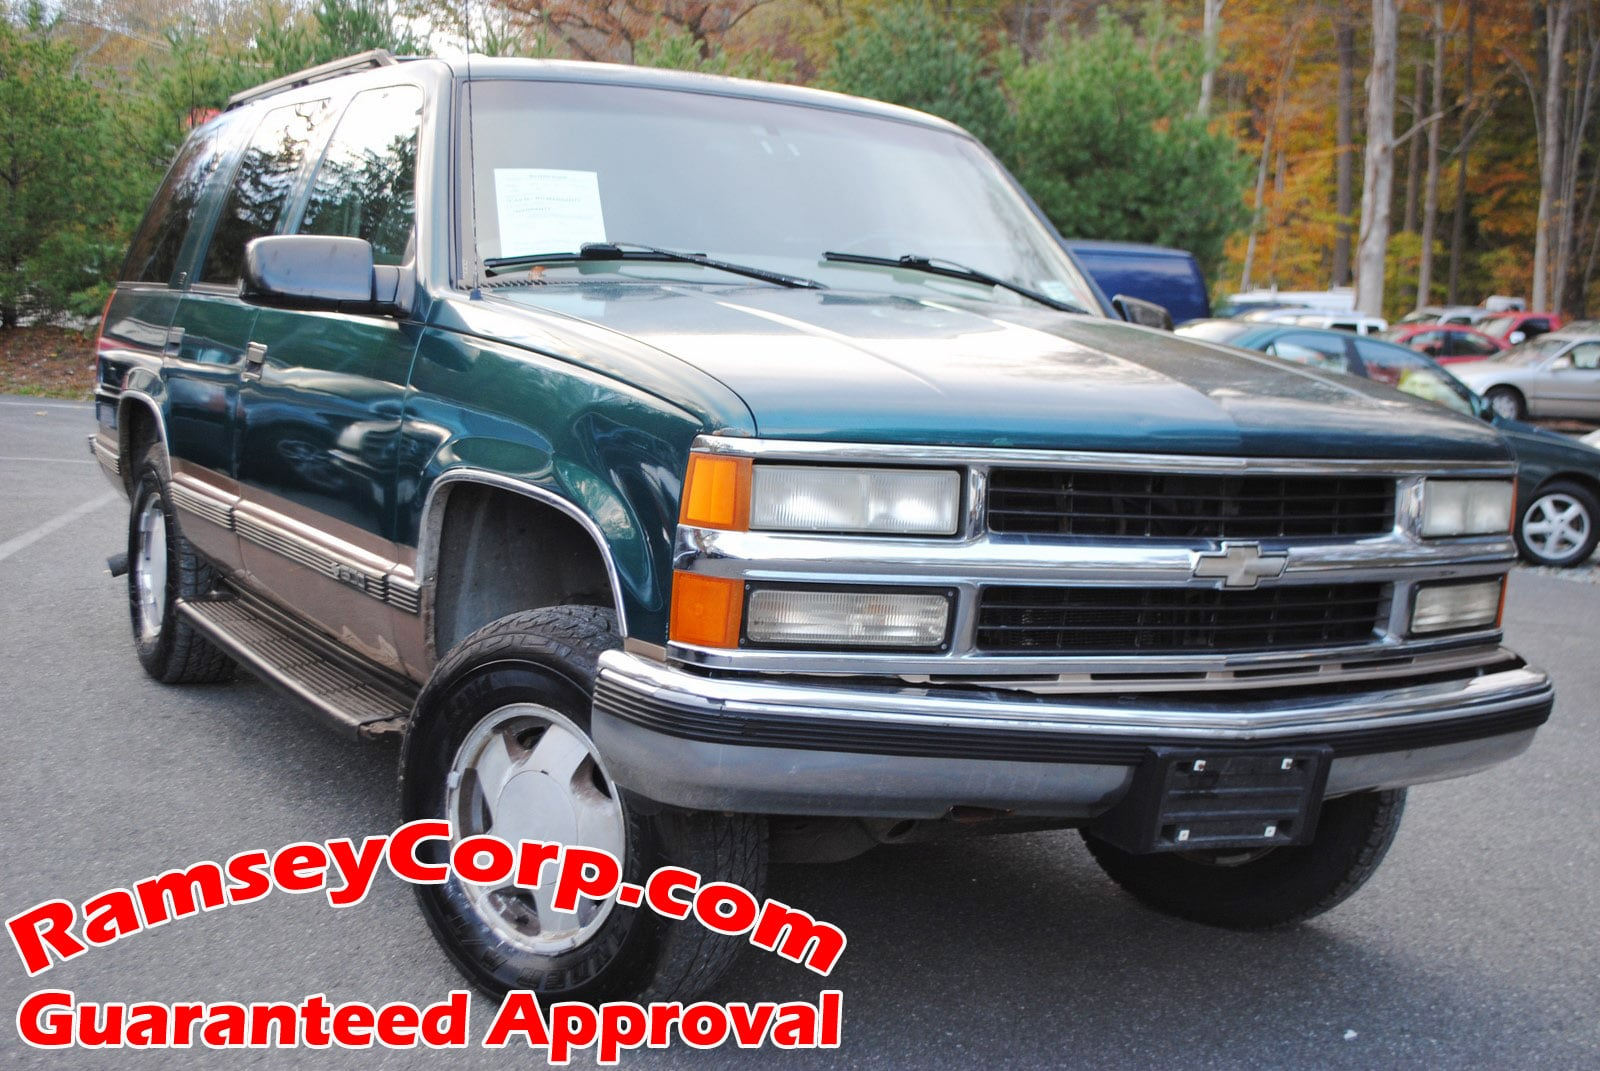 used 1997 chevrolet tahoe for sale west milford nj rh ramseycorp com 1993 Tahoe 1997 2 Door Tahoe